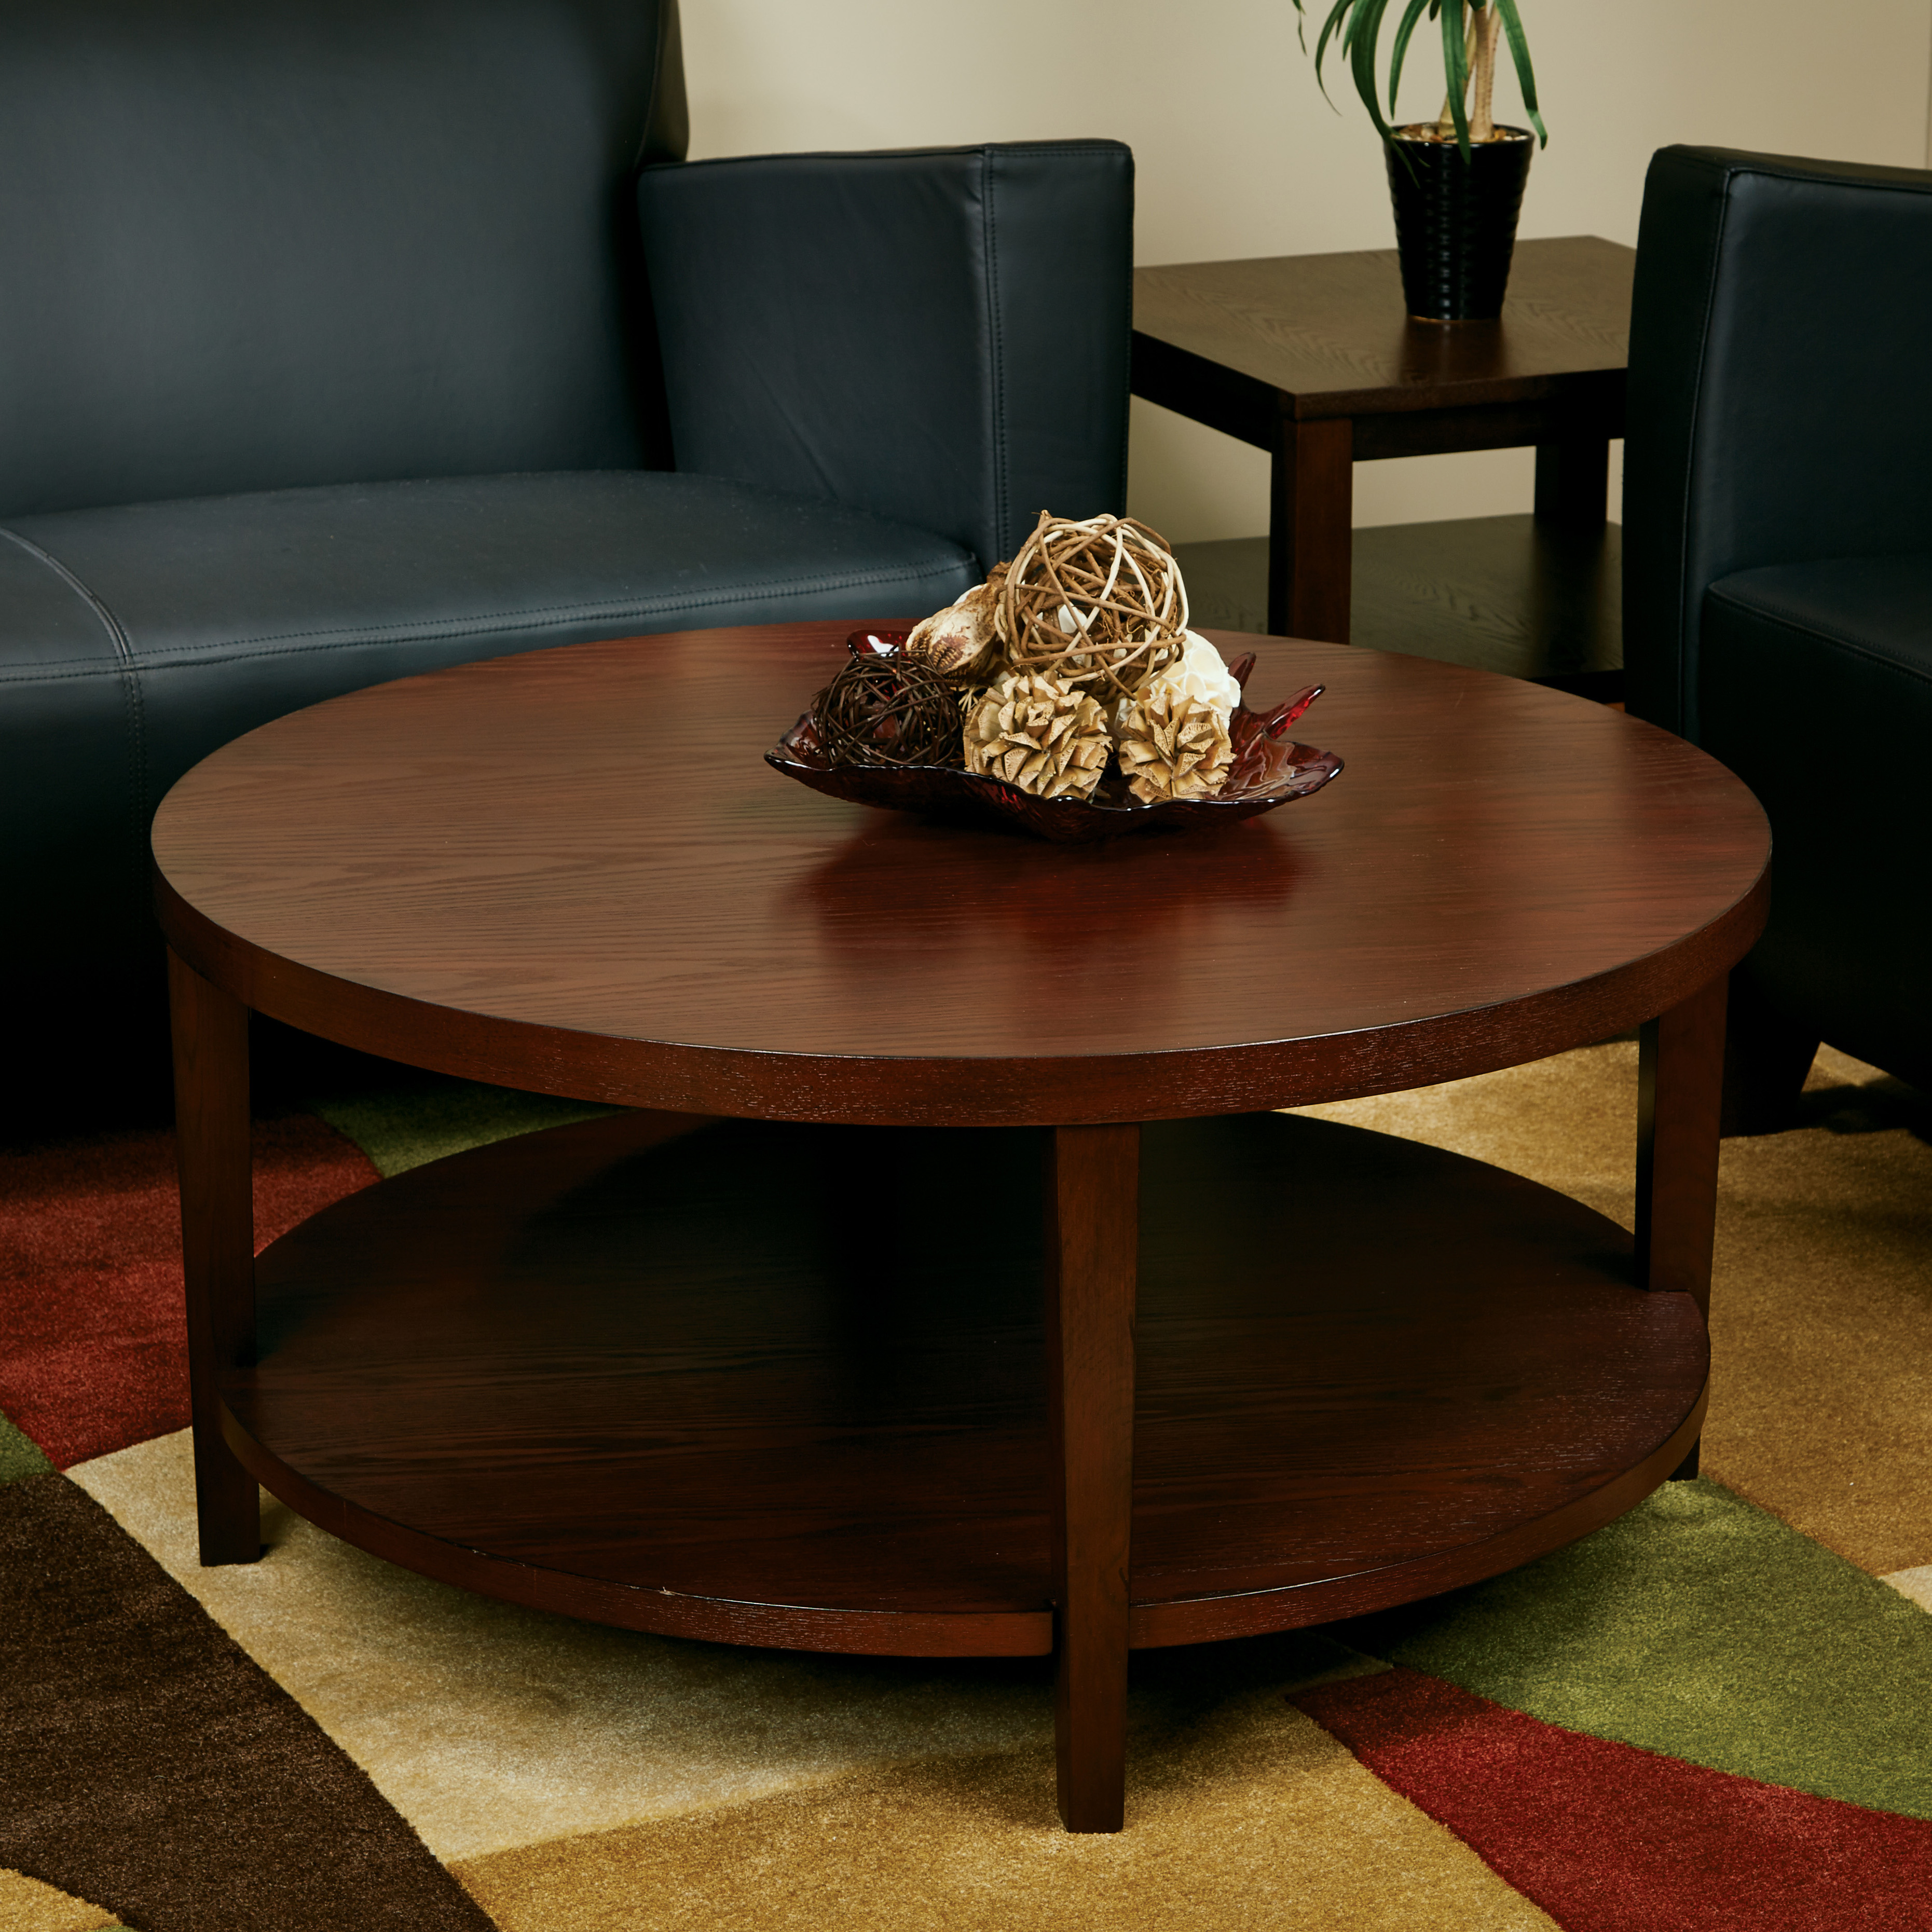 36 inch round coffee table - starrkingschool